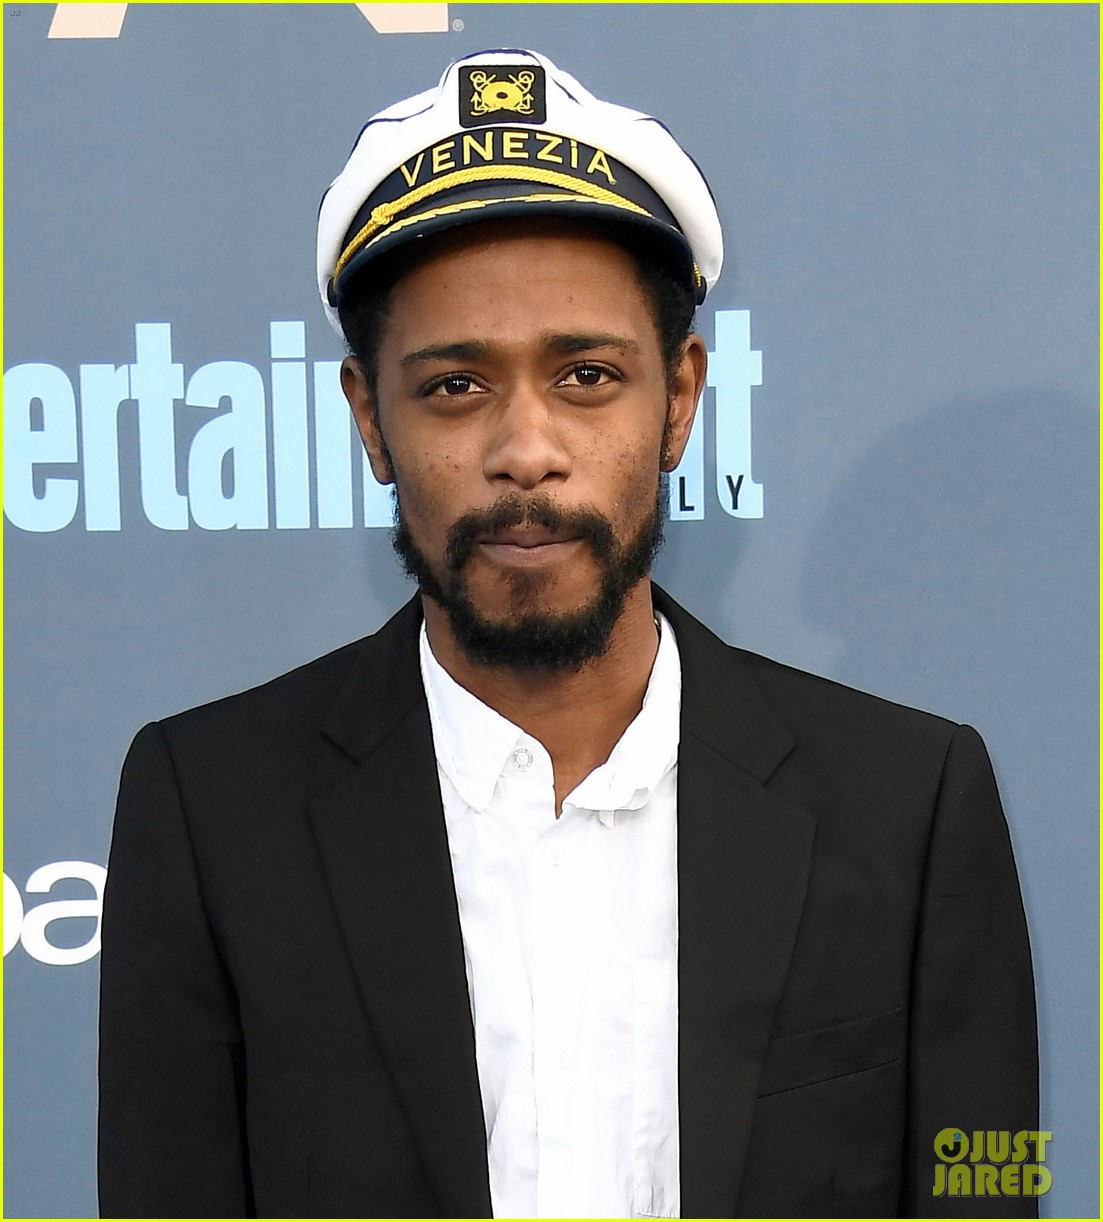 keith stanfield american familykeith stanfield l, keith stanfield instagram, keith stanfield кинопоиск, keith stanfield life's like, keith stanfield life's like lyrics, keith stanfield death note, keith stanfield twitter, keith stanfield short term 12, keith stanfield straight outta compton, keith stanfield, keith stanfield snoop dogg, keith stanfield snoop, keith stanfield after party, keith stanfield after party lyrics, keith stanfield vicious, keith stanfield dope, keith stanfield selma, keith stanfield net worth, keith stanfield height, keith stanfield american family